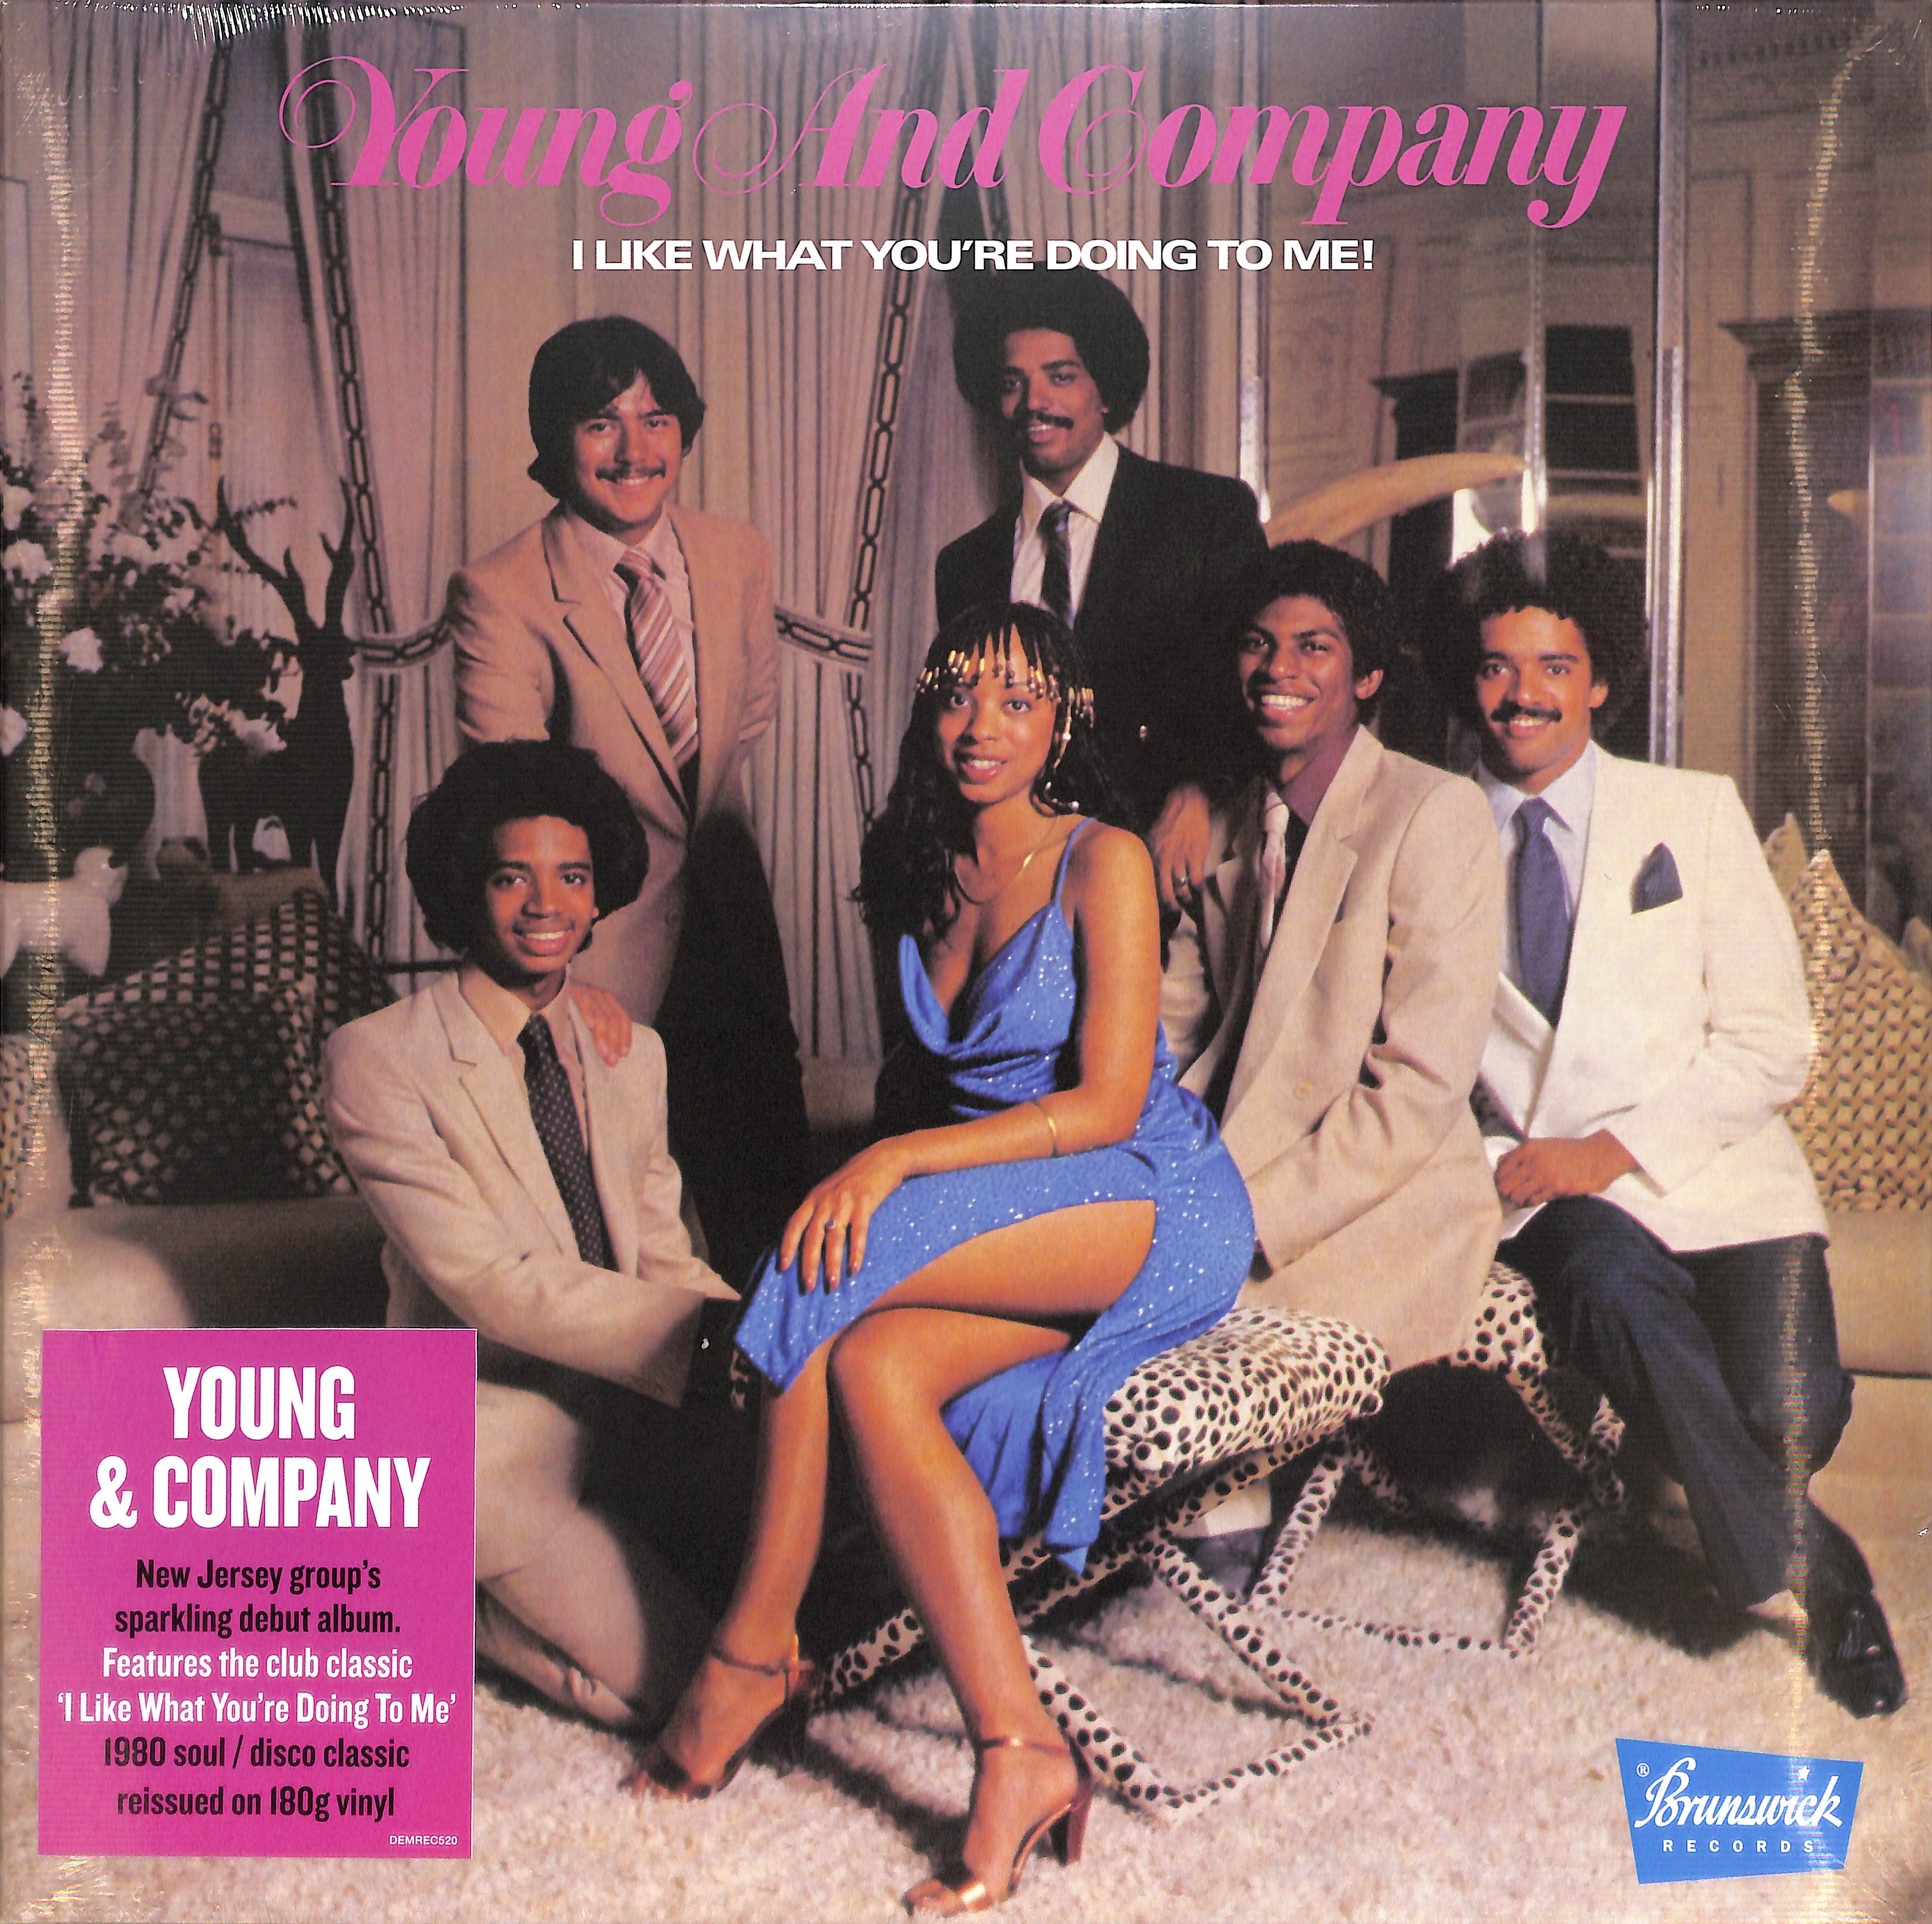 Young & Company - I LIKE WHAT YOU ARE DOING TO ME!